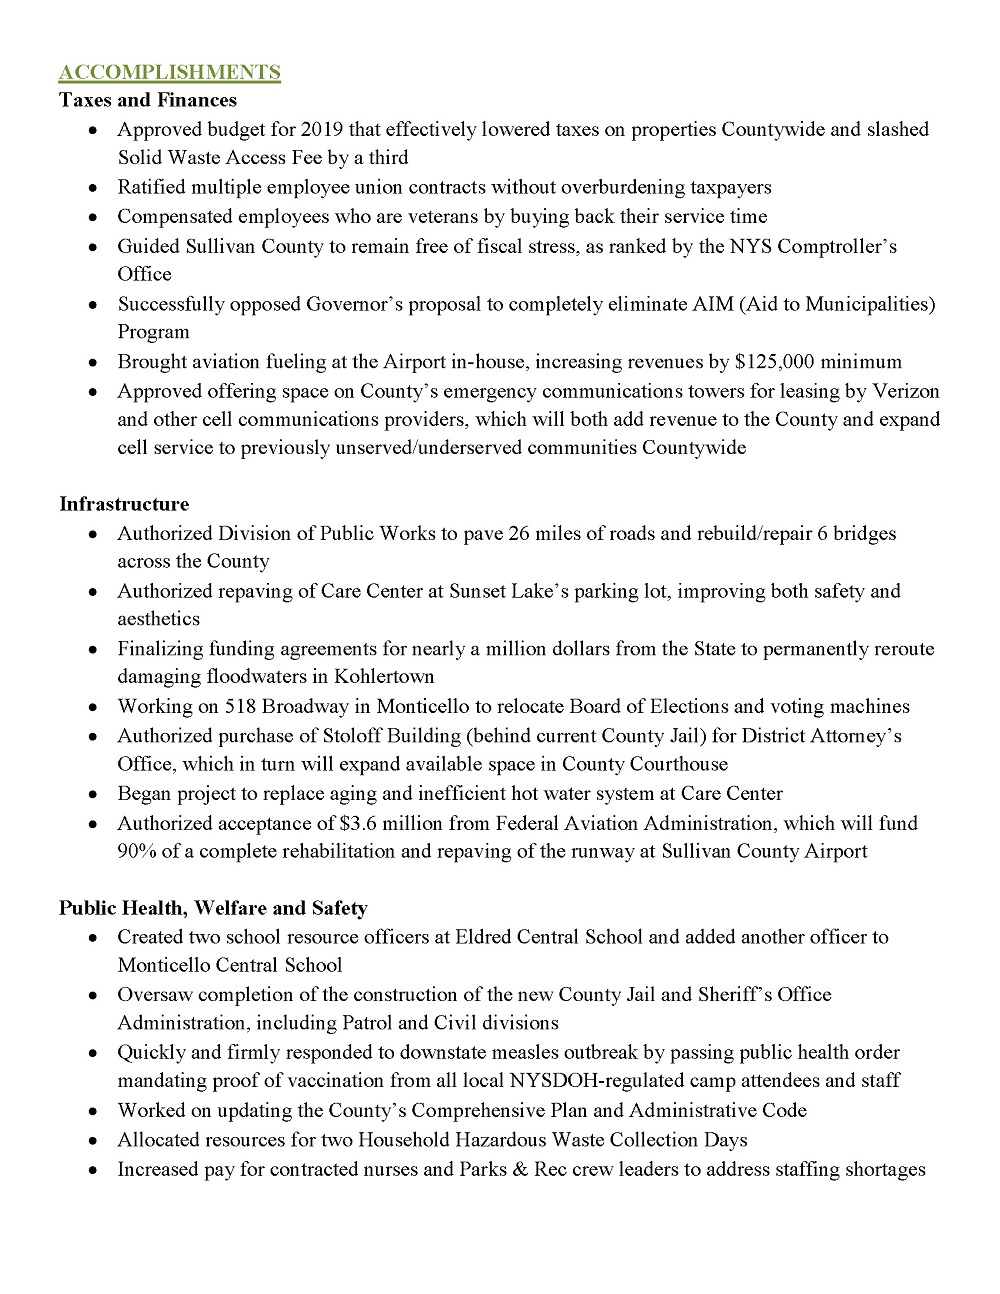 2019 Legislature Accomplishments Page 2.jpg